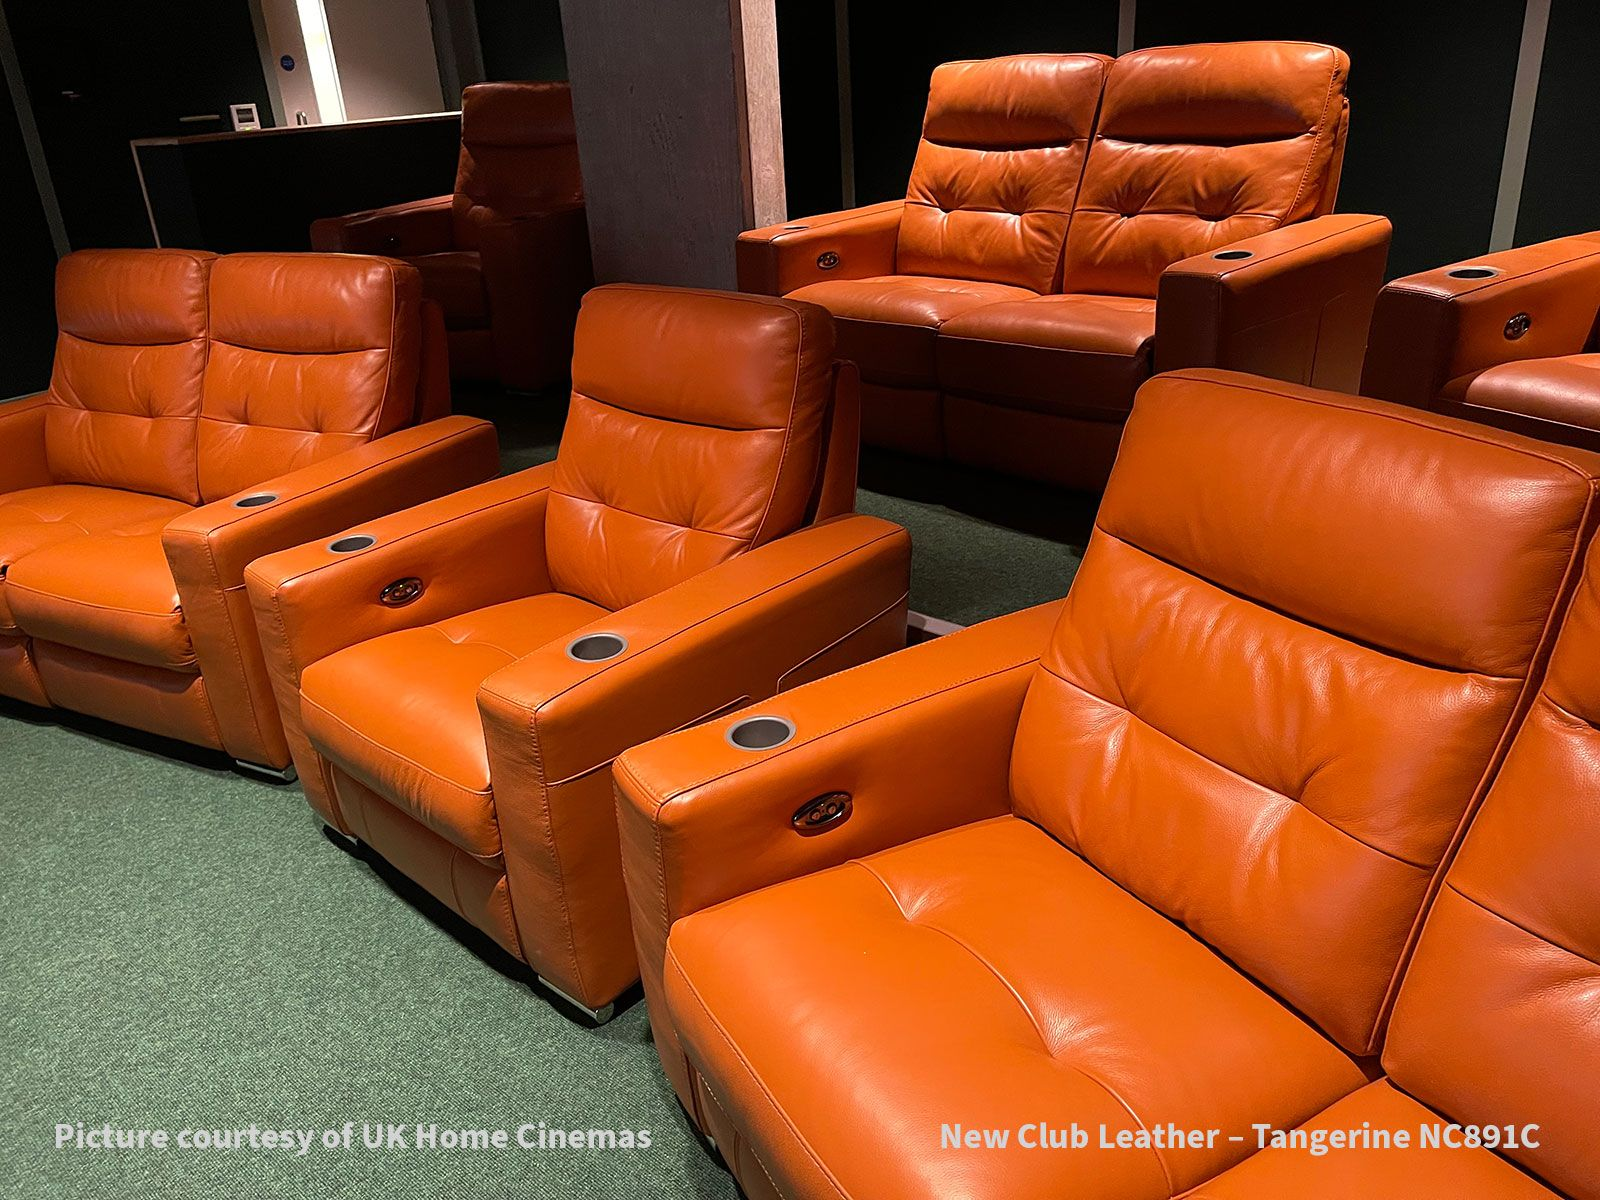 Frontrow™ Serenity home cinema seating New Club Leather Tangerine